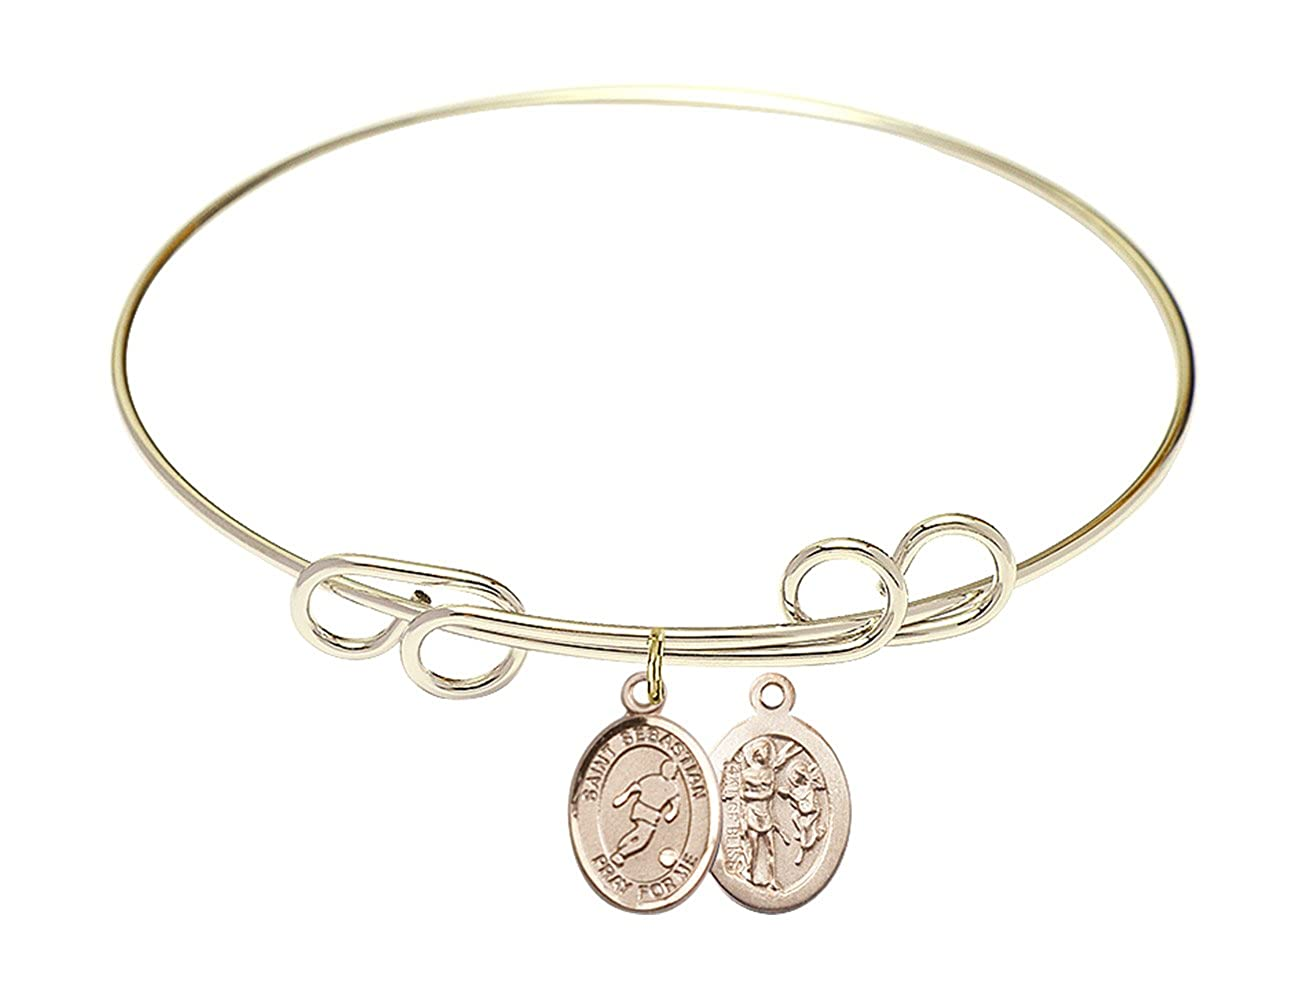 Sebastian//Soccer charm. 8 inch Round Double Loop Bangle Bracelet with a St